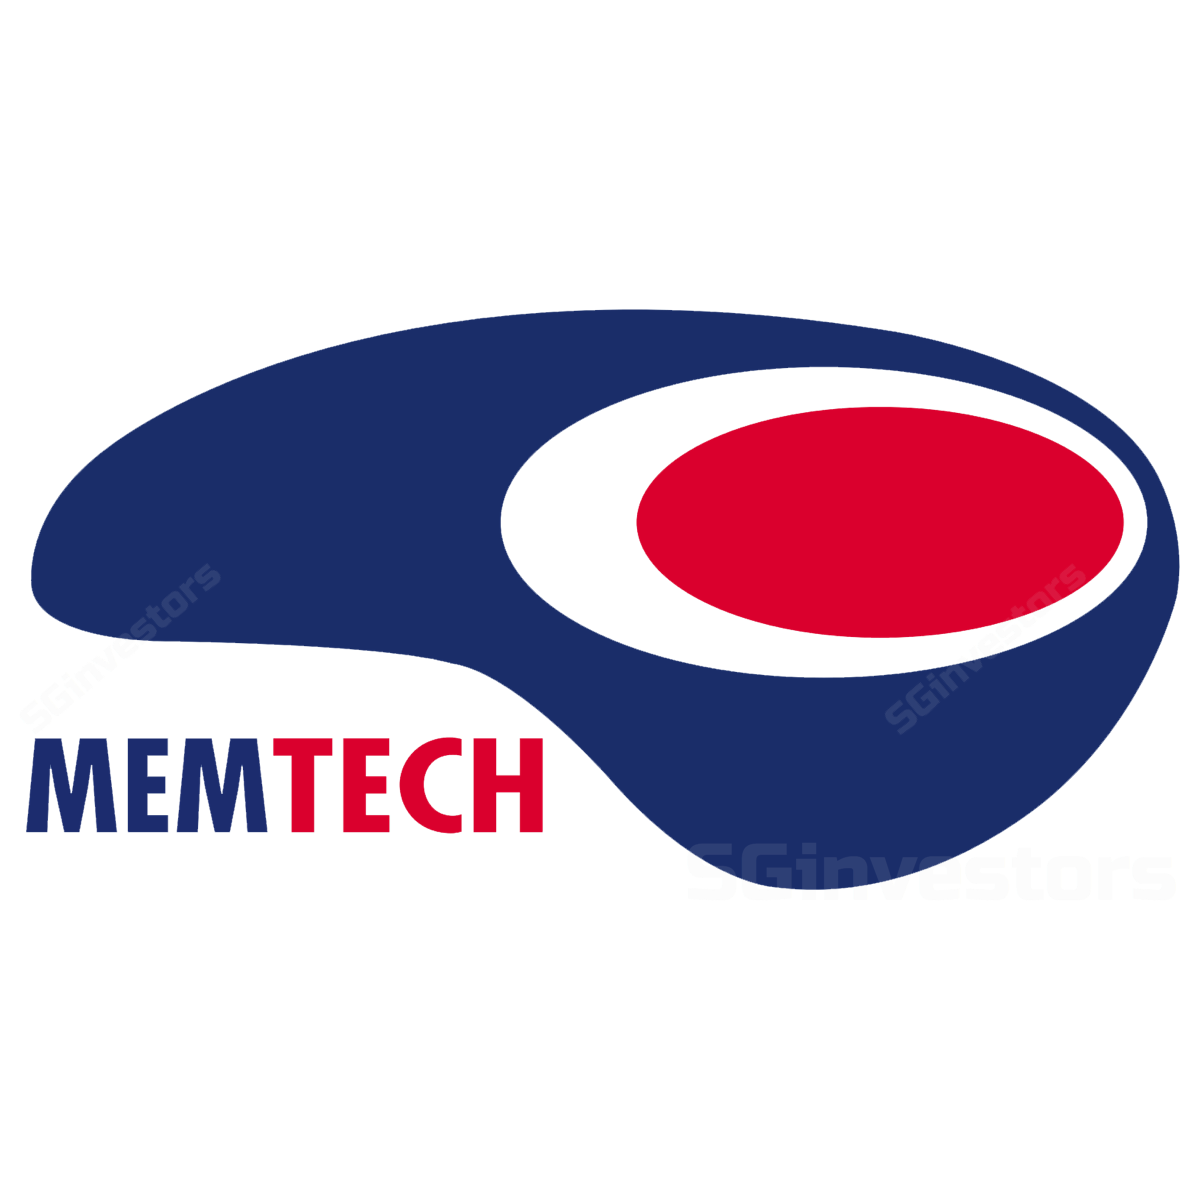 Memtech International - OCBC Investment 2017-02-27: Exciting prospects for CE segment in 2017